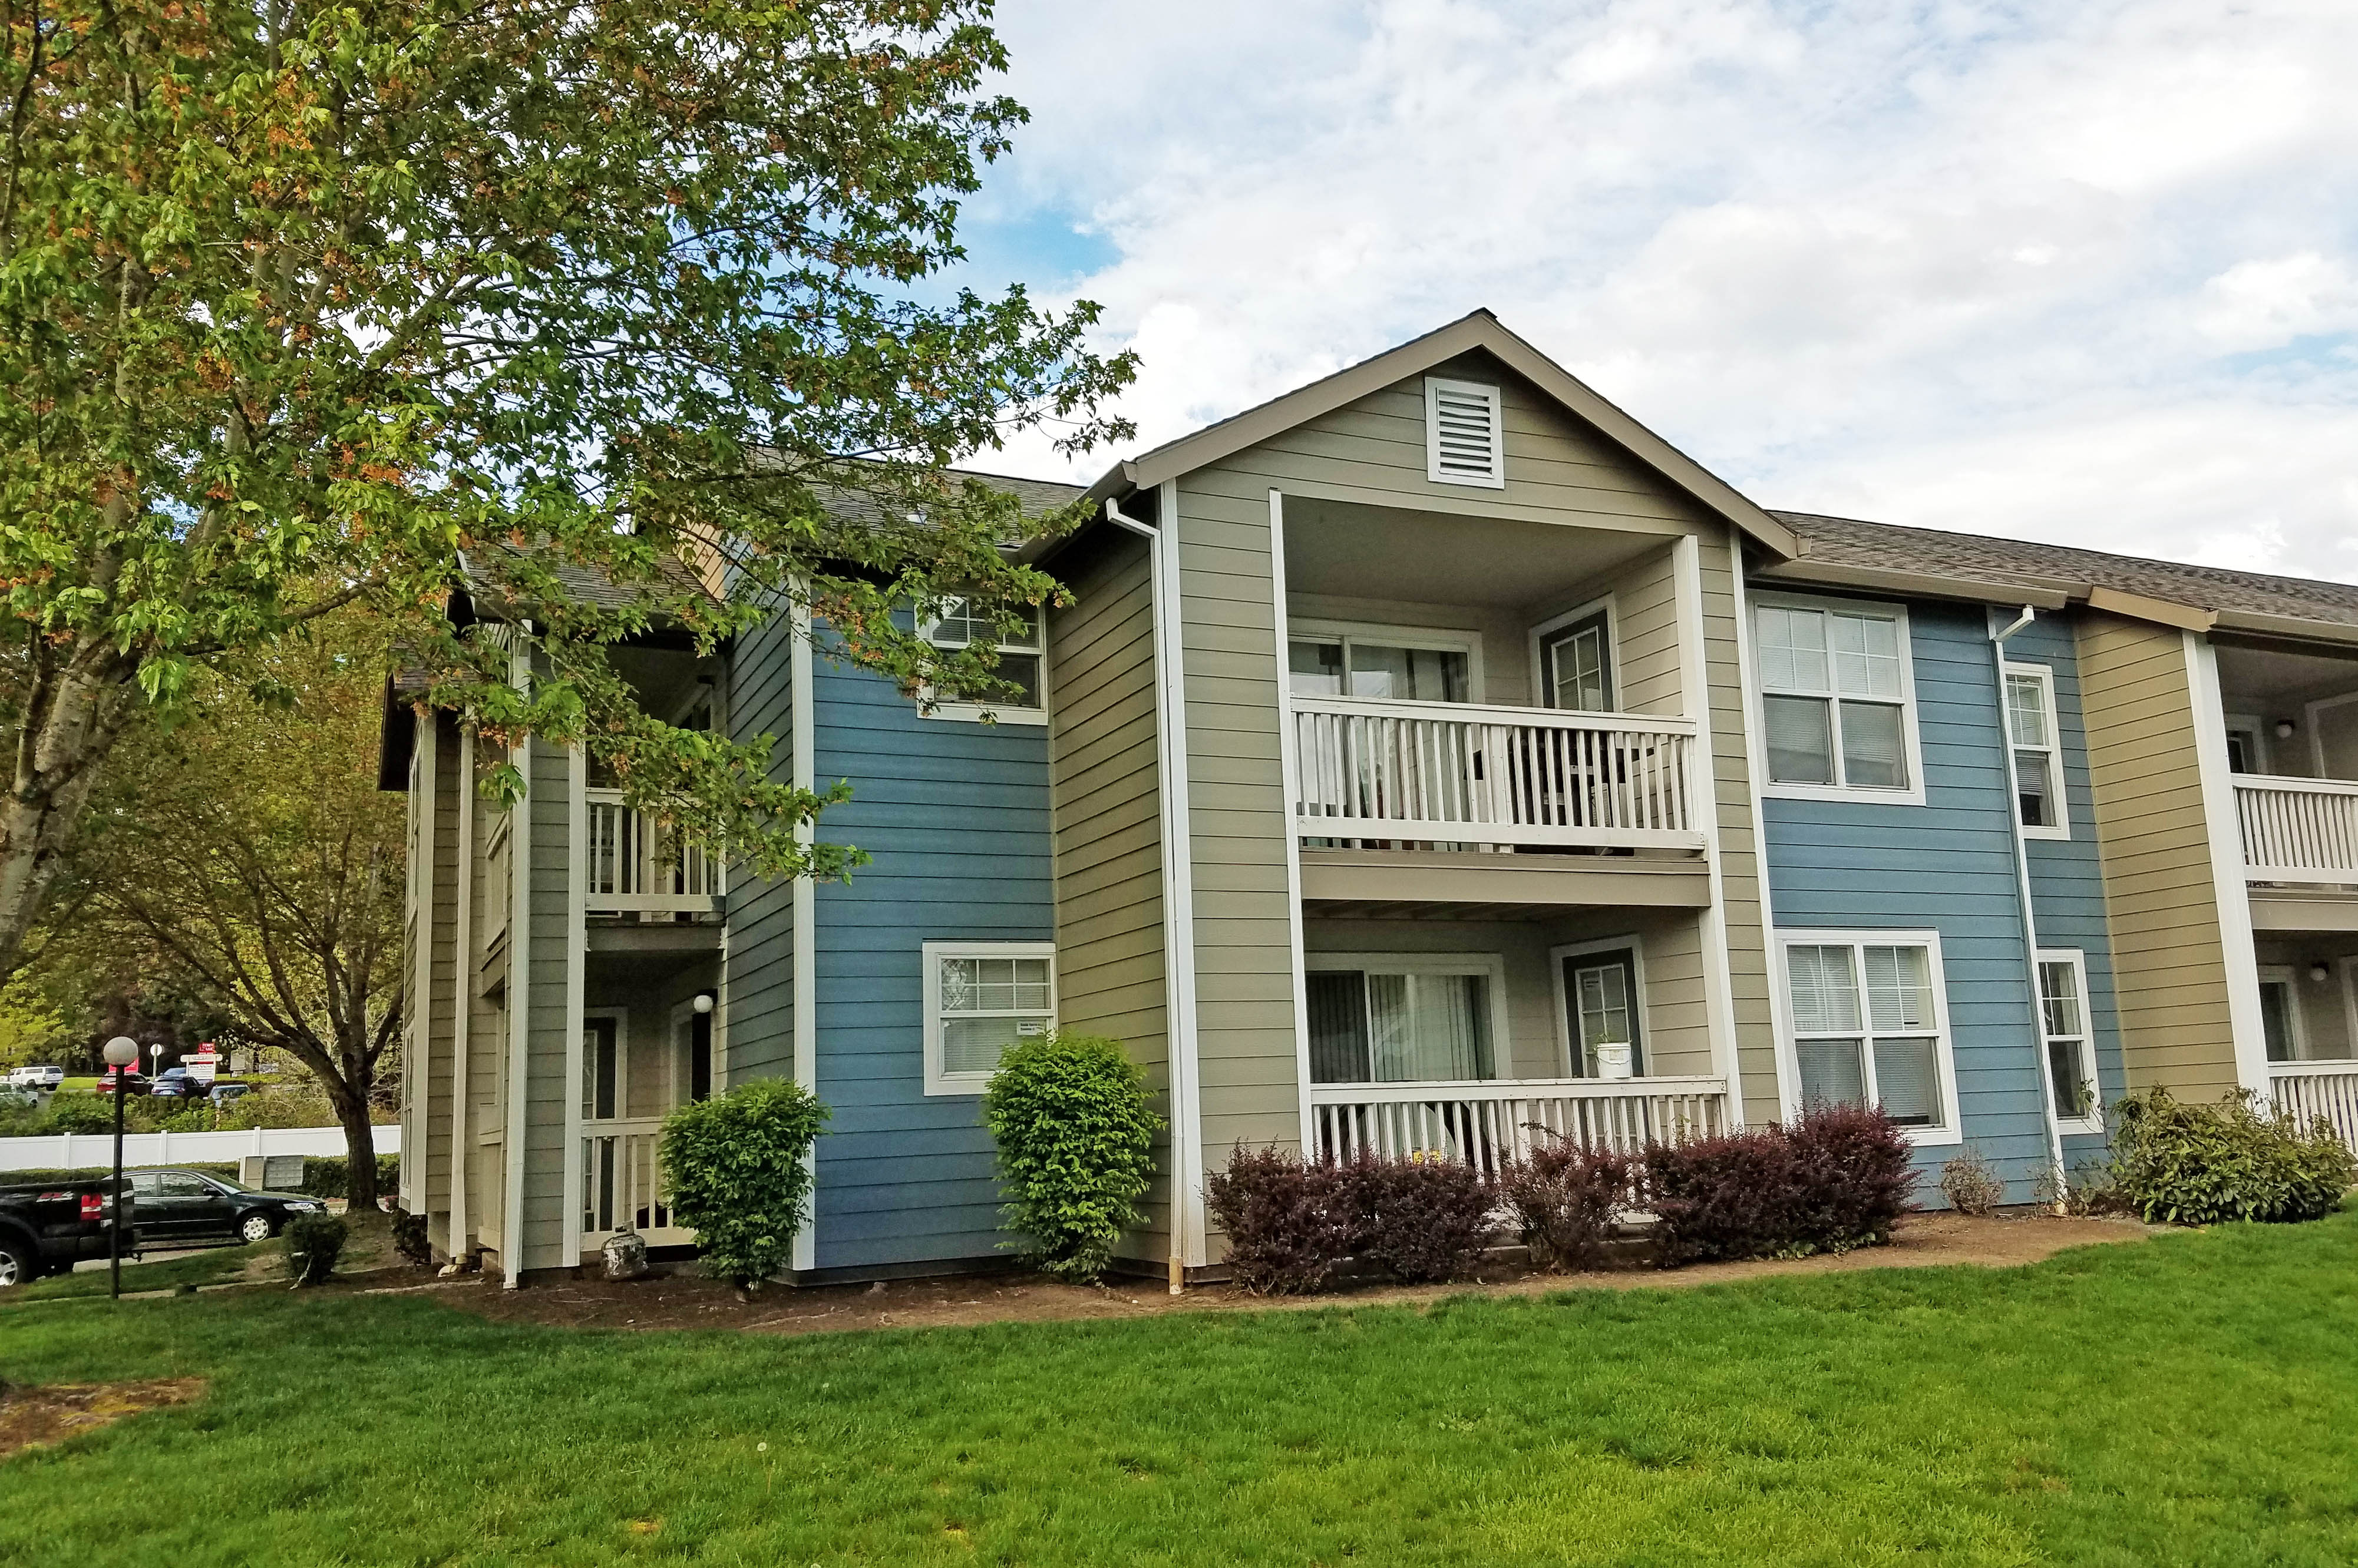 Tualatin View affordable apartments in Portland Oregon